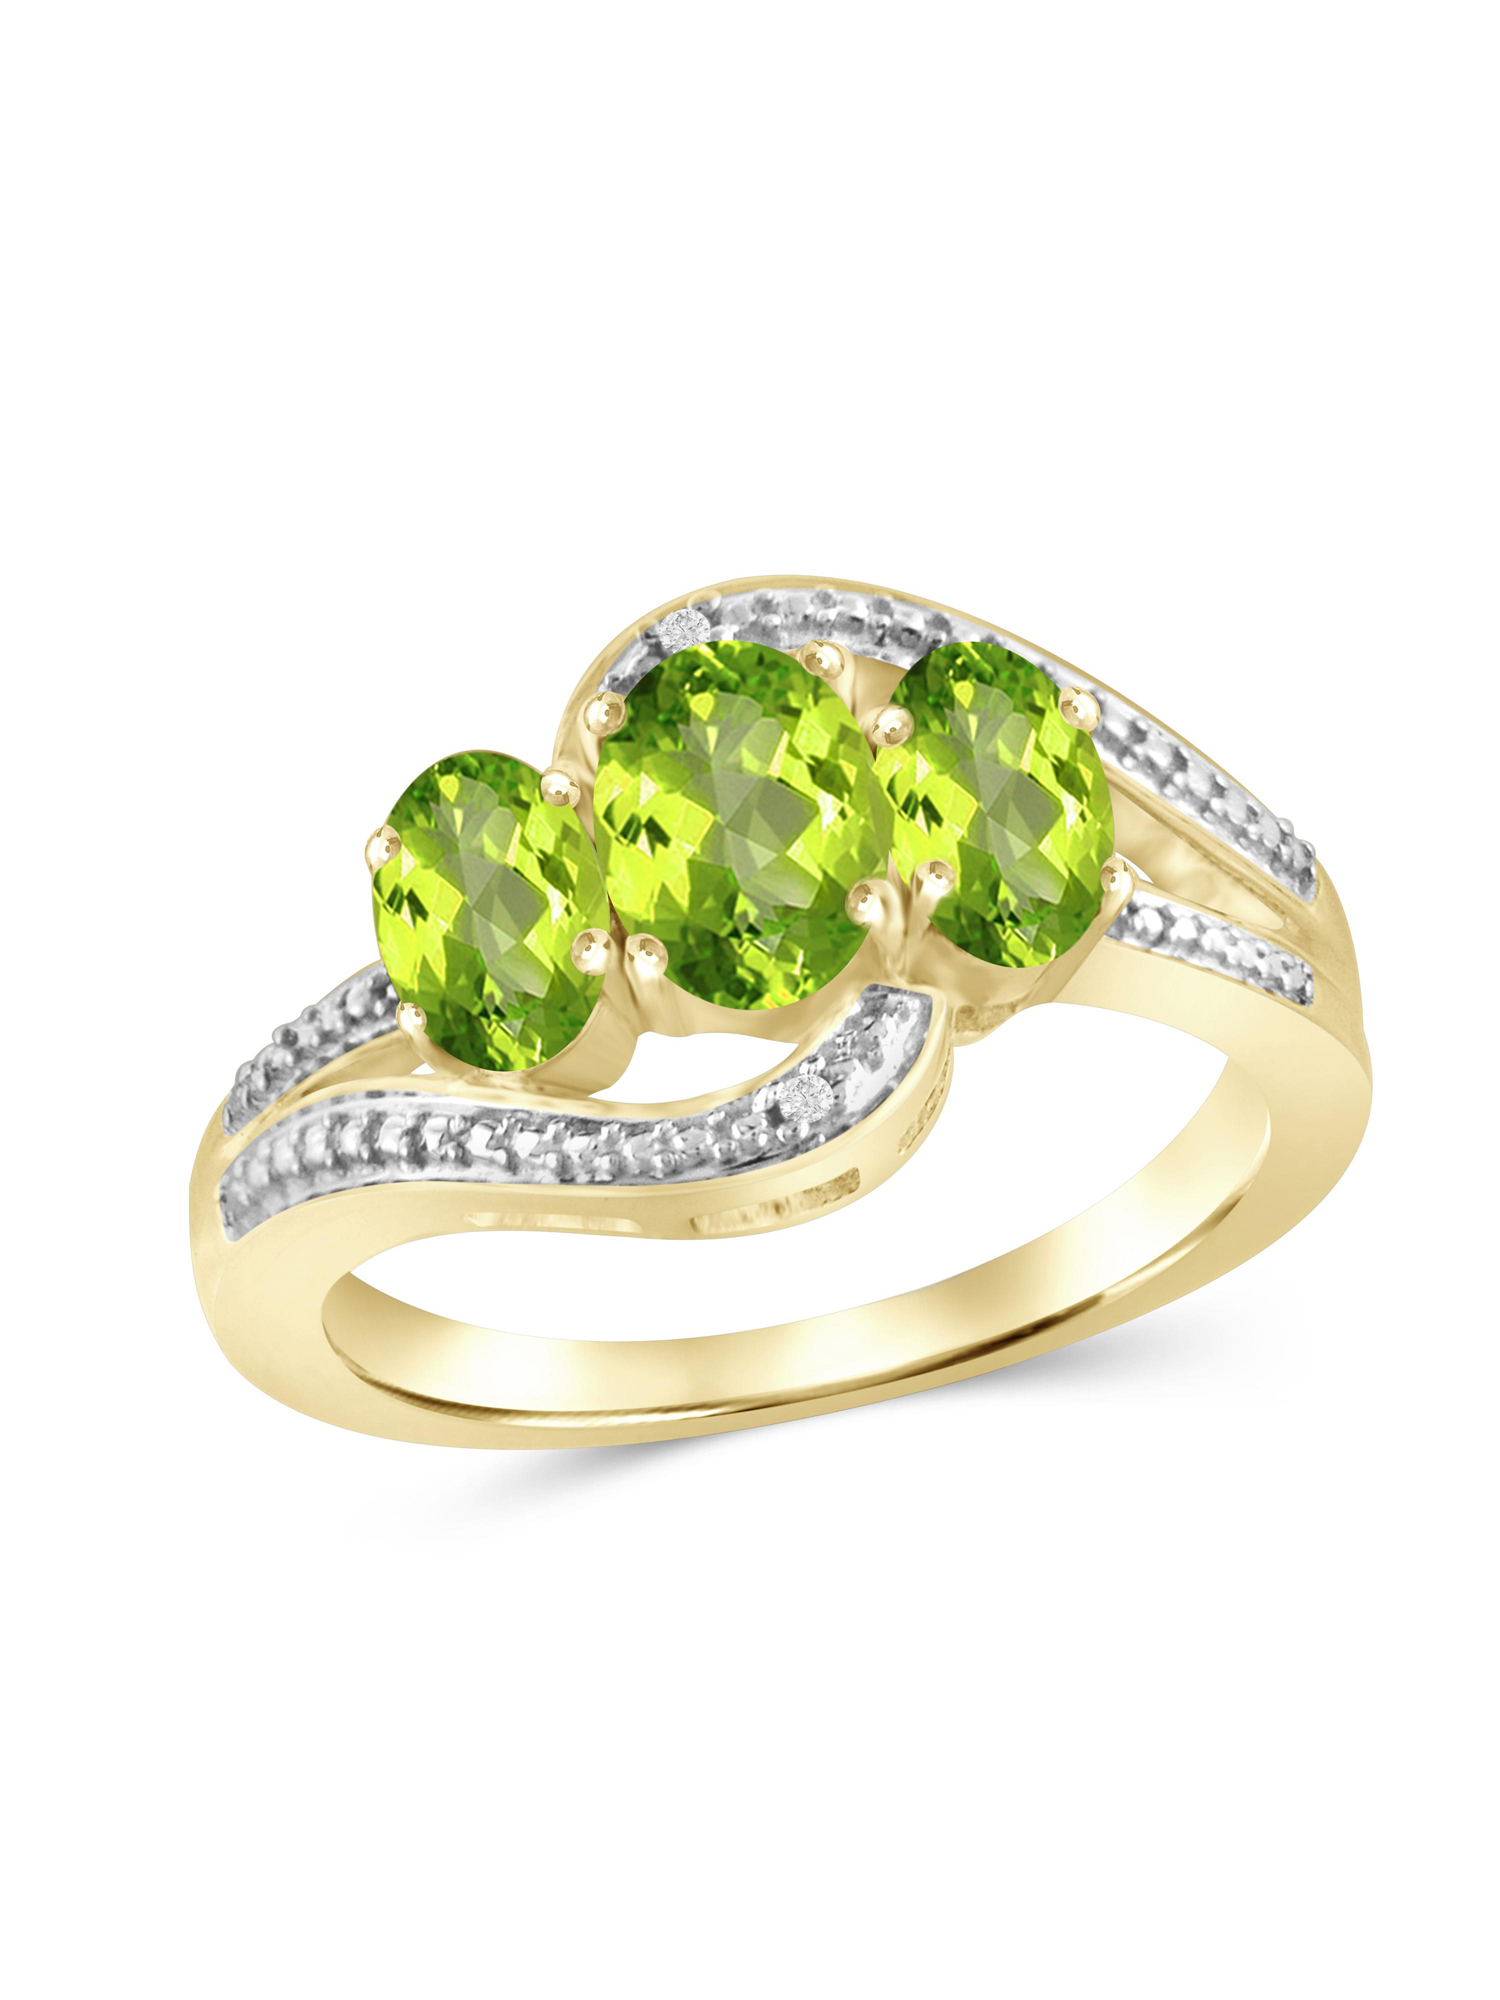 1 3/4 Carat T G W  Peridot And White Diamond Accent 14k Gold Over Silver  Ring